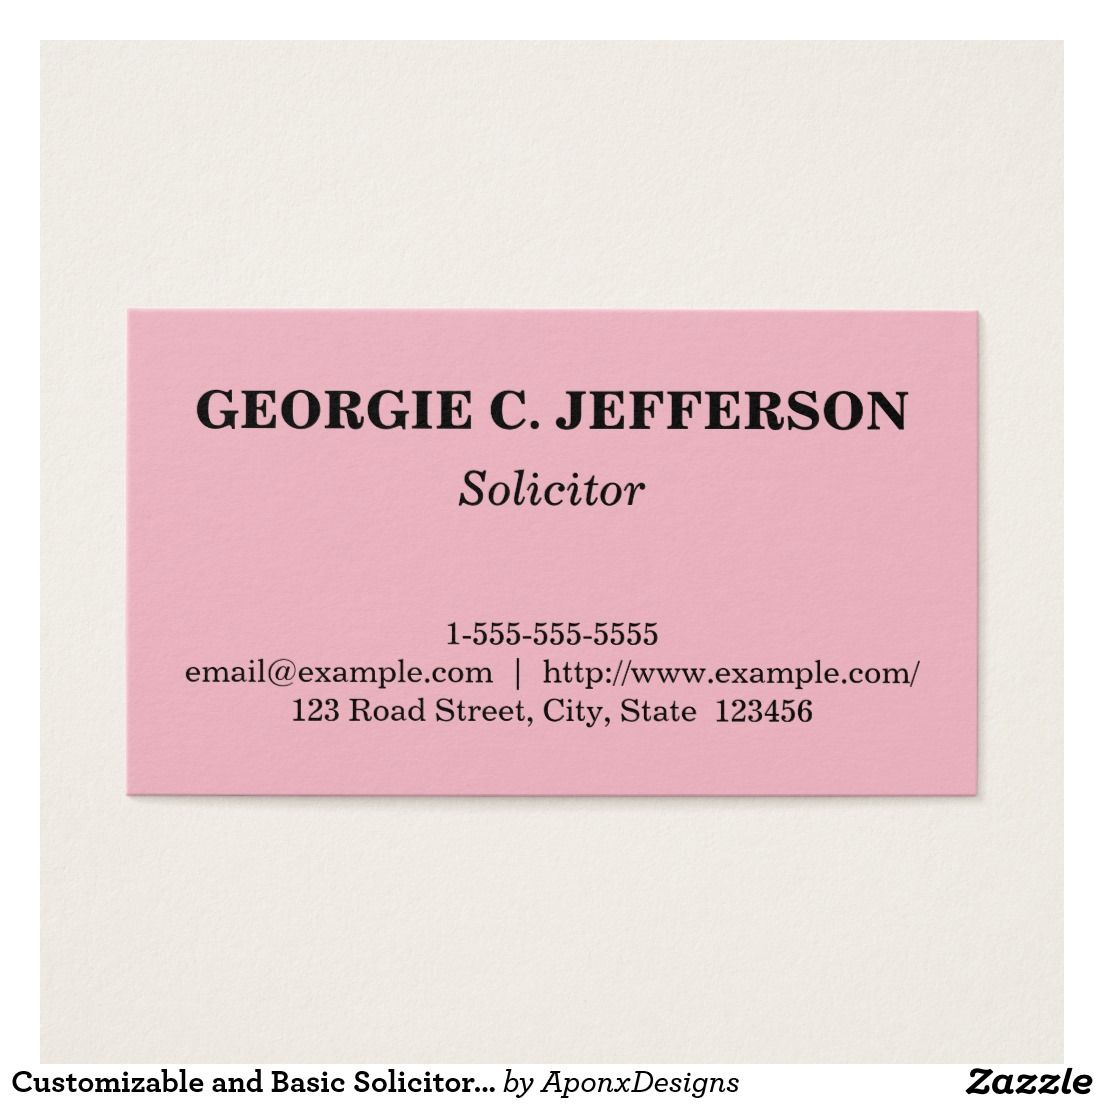 Customizable and Basic Solicitor Business Card | Business cards ...